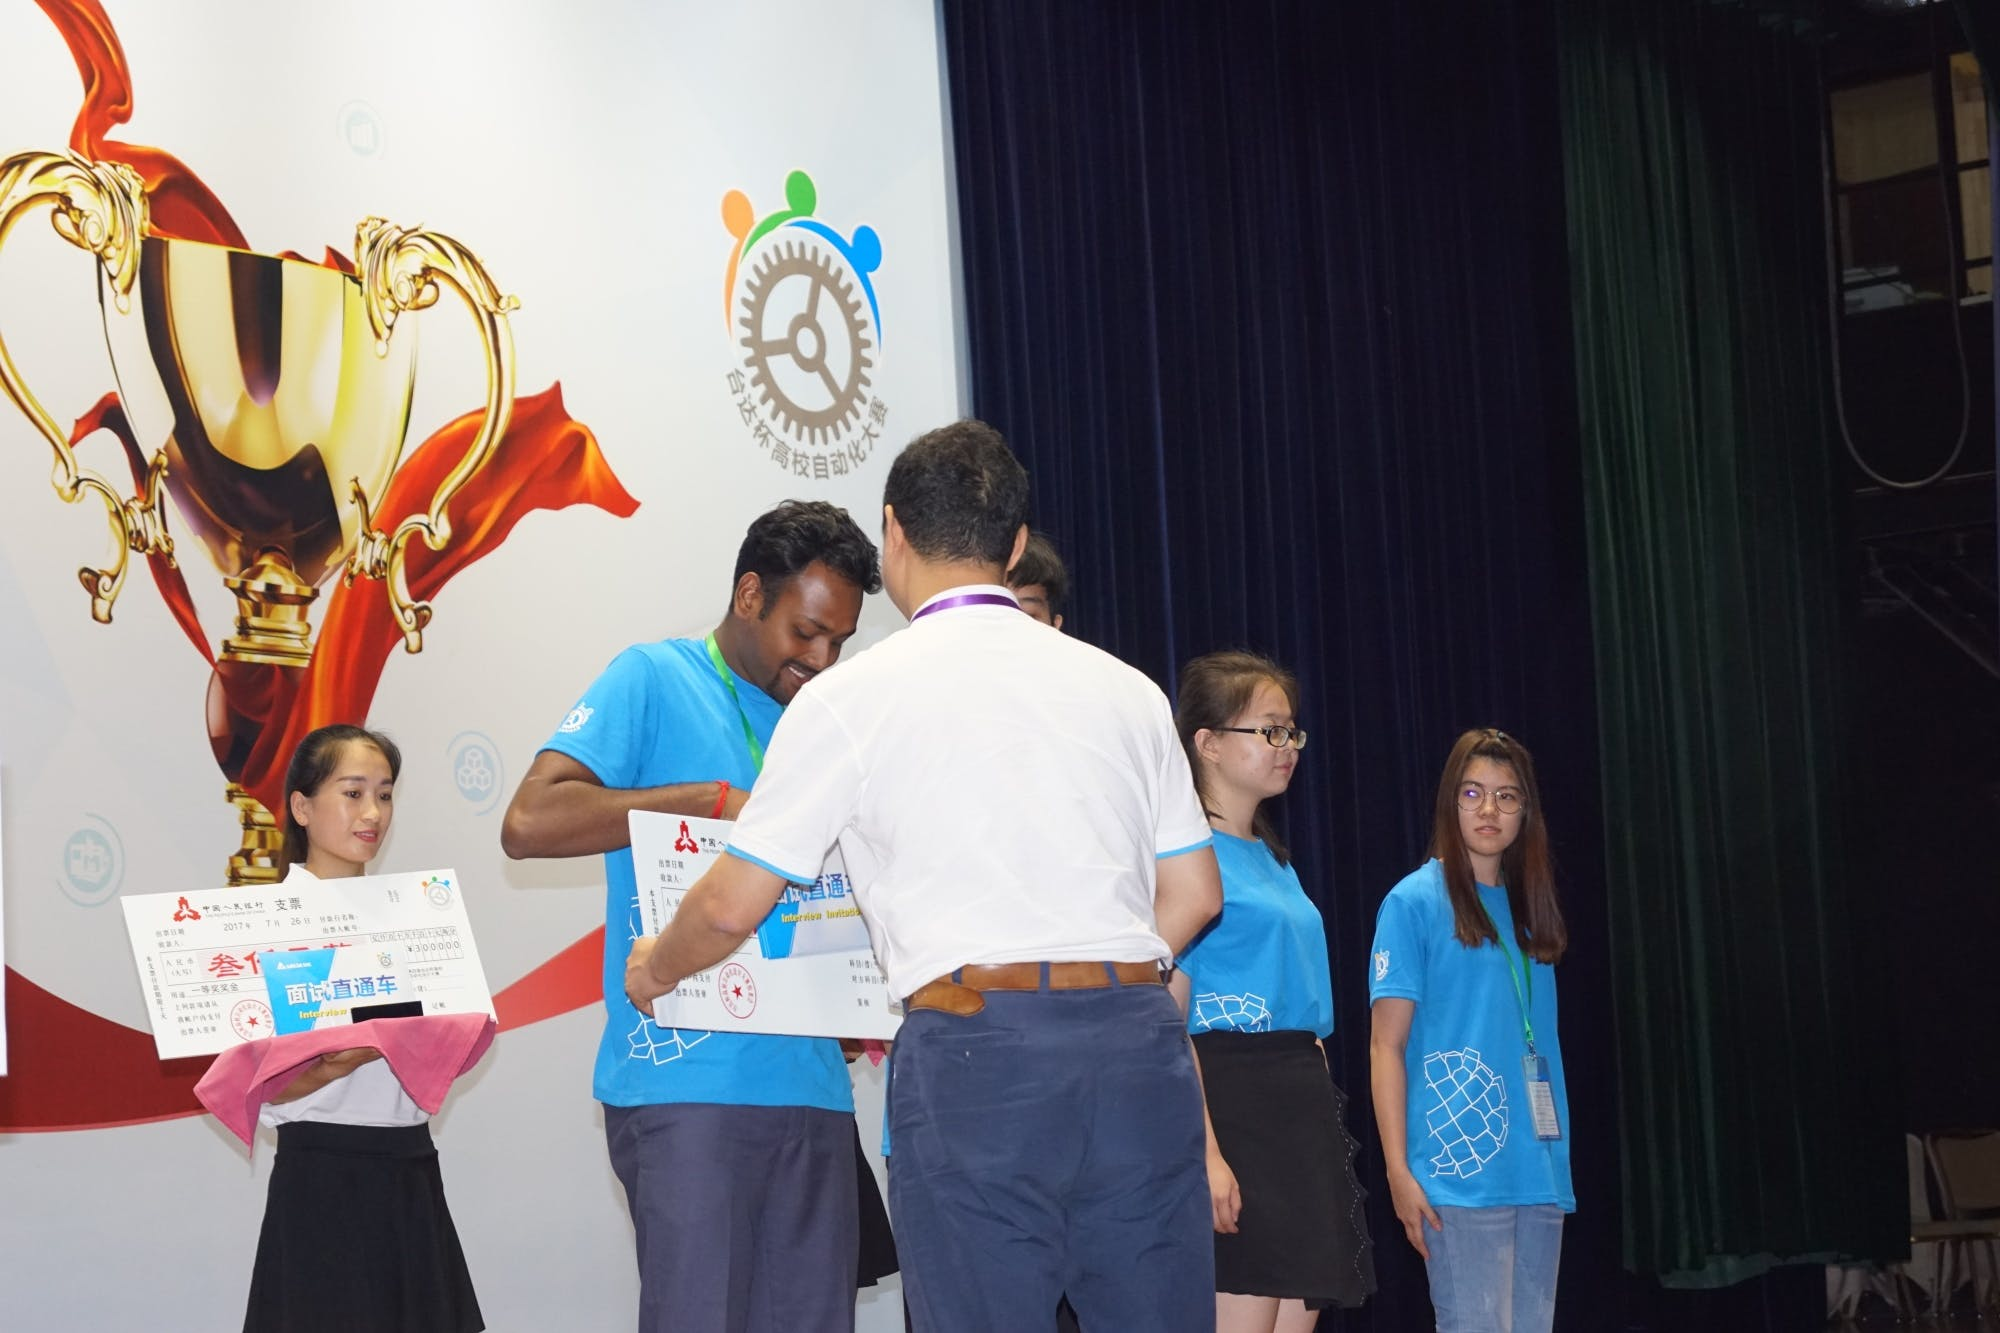 Receiving the First Prize